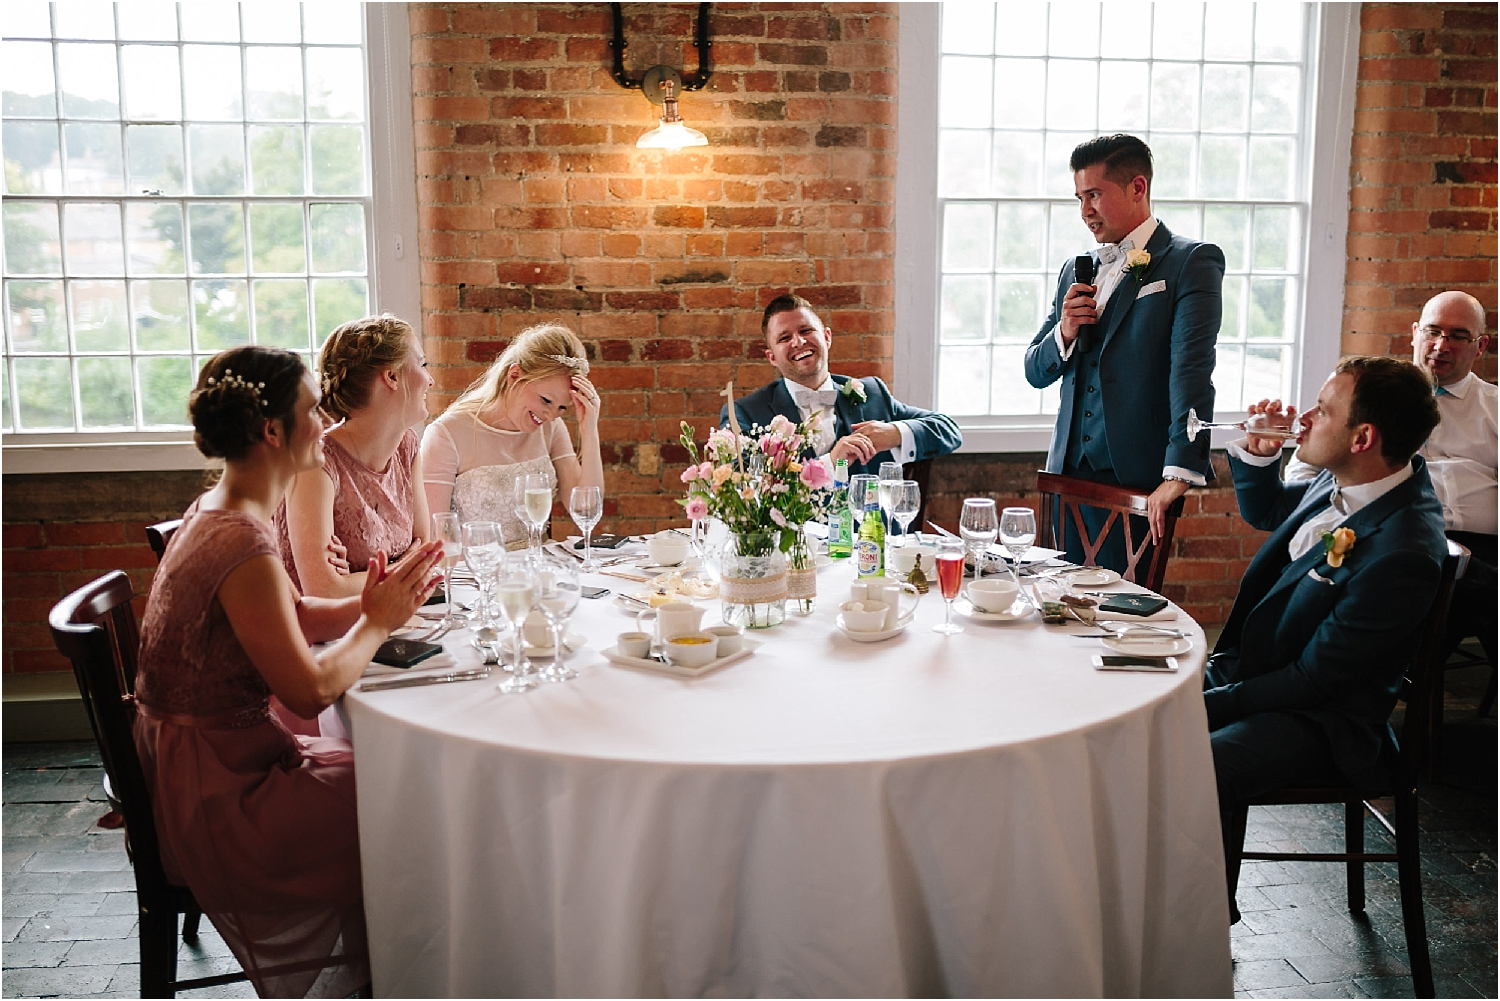 Wedding-west-mill-venue-professional-photographer-natural-documentary-nottingham-derby-345_BLOG.jpg